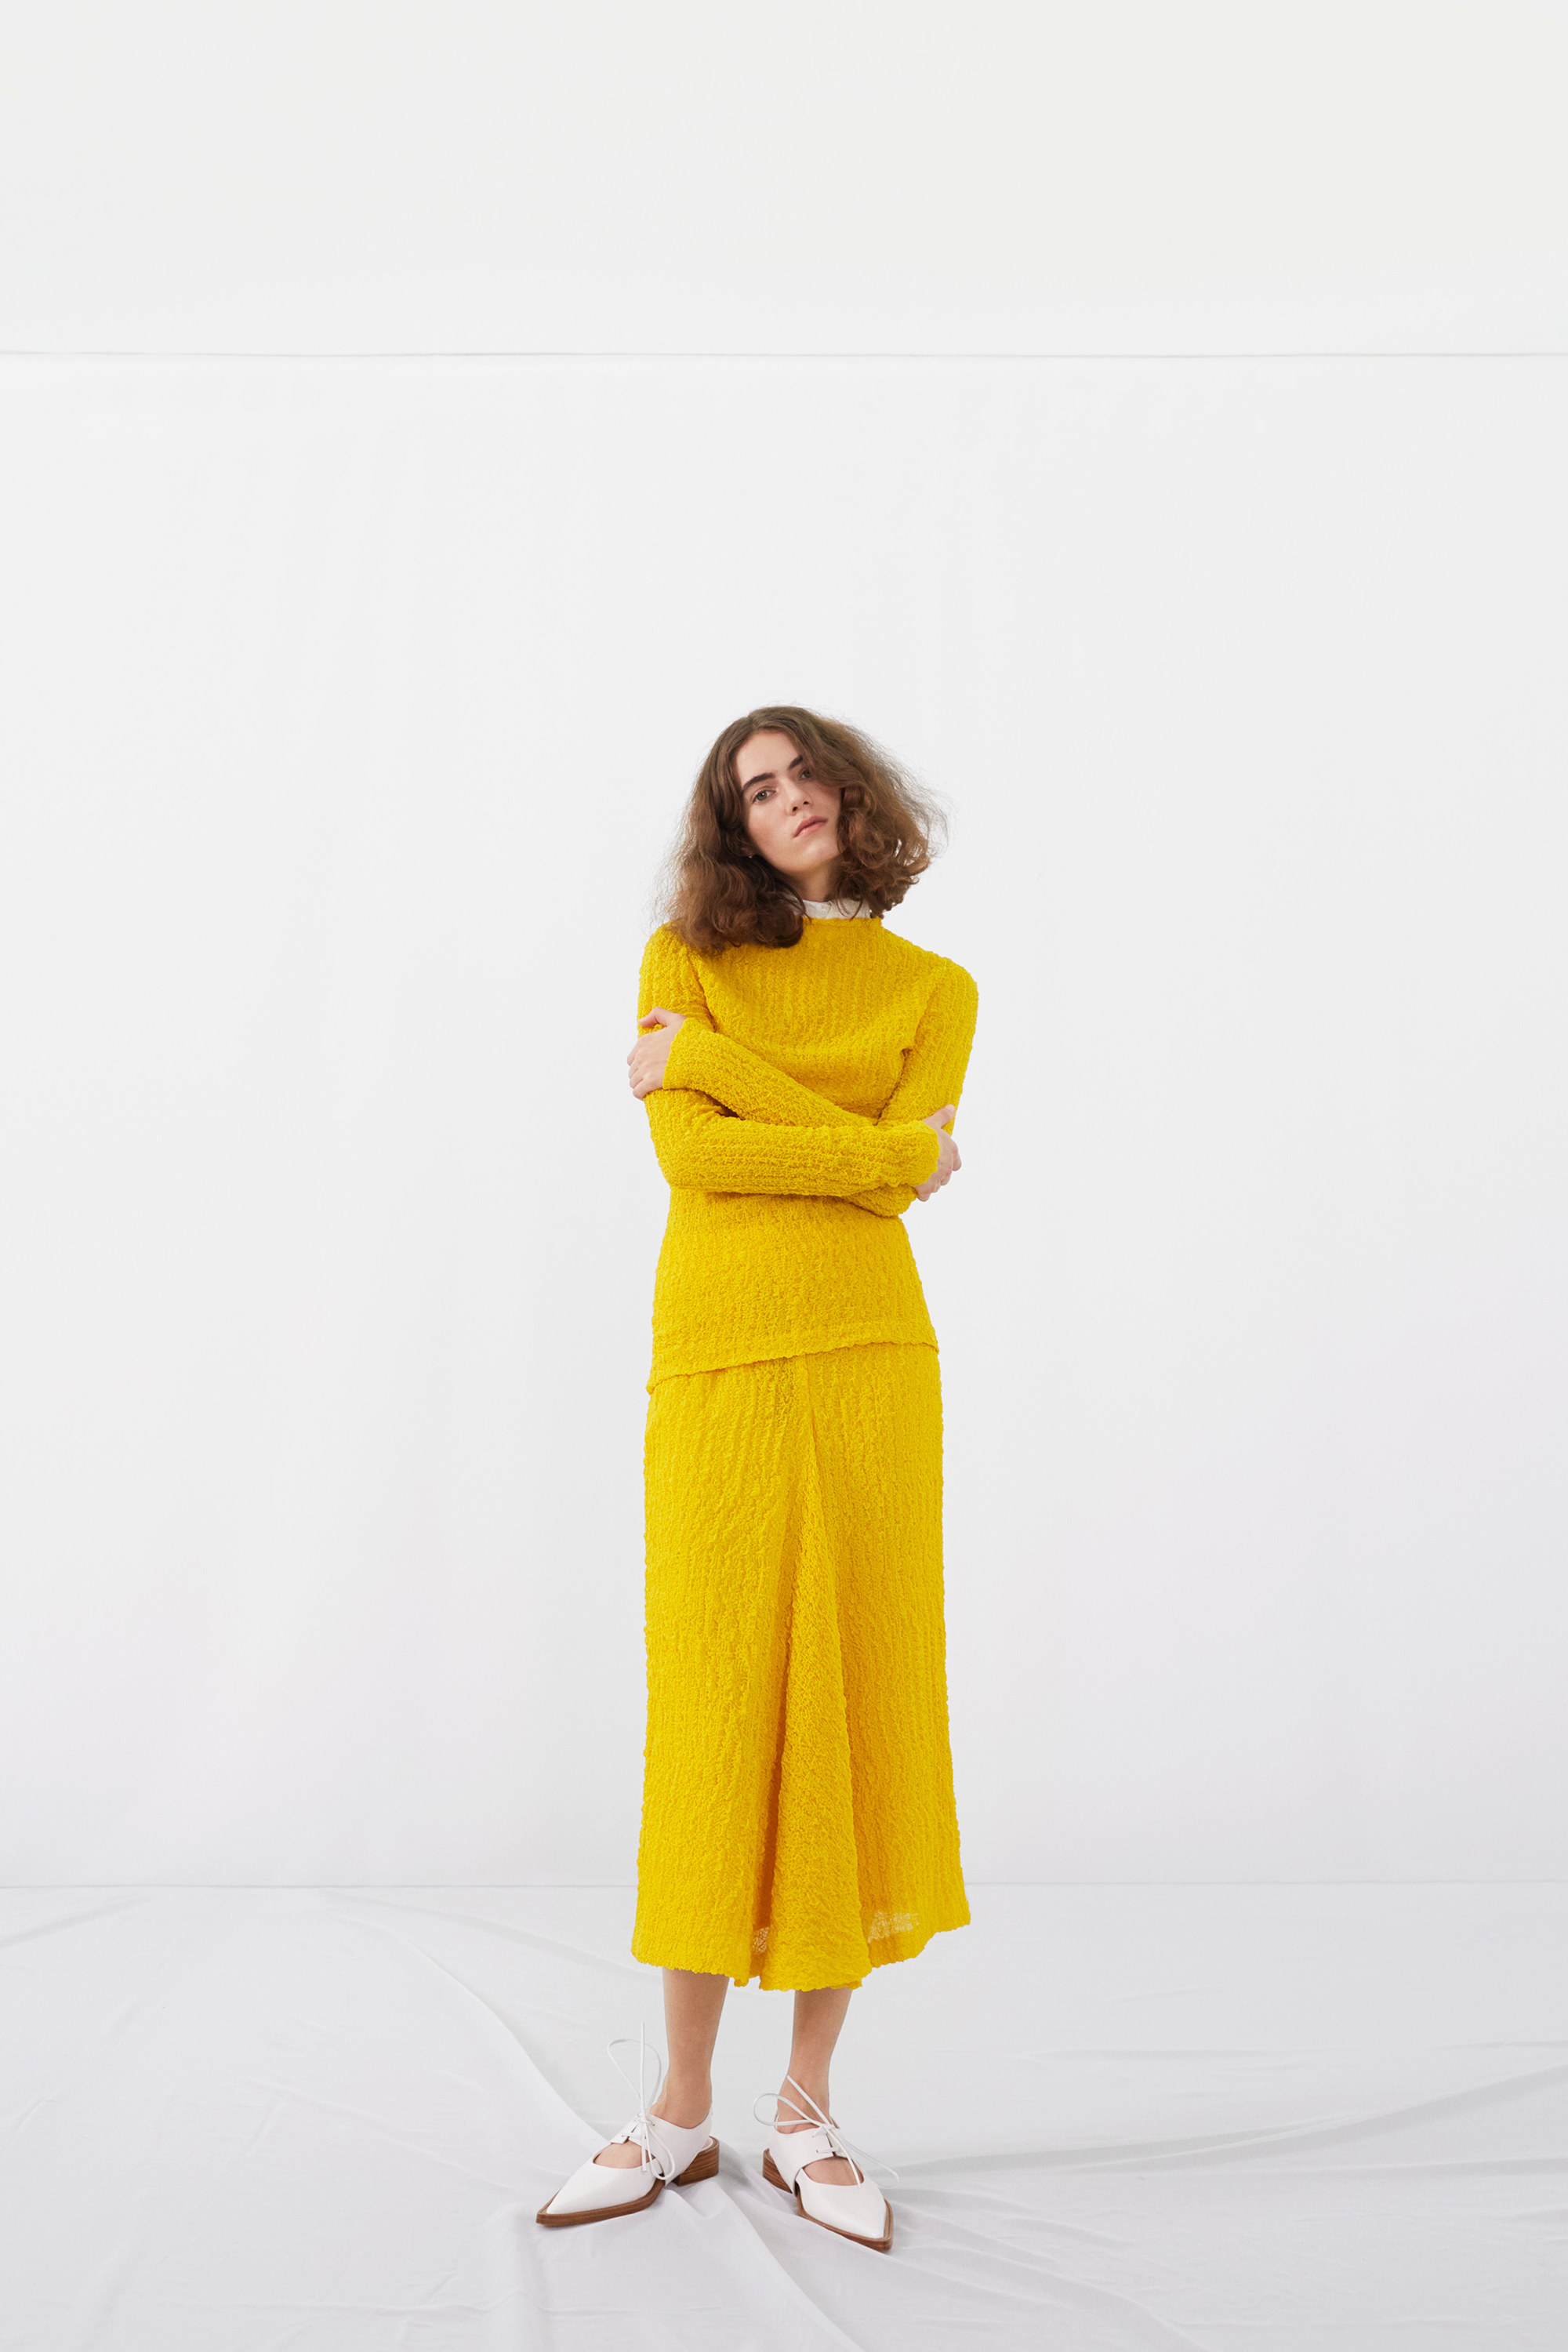 victoria-beckham-pre-fall-2016-lookbook-10.jpg